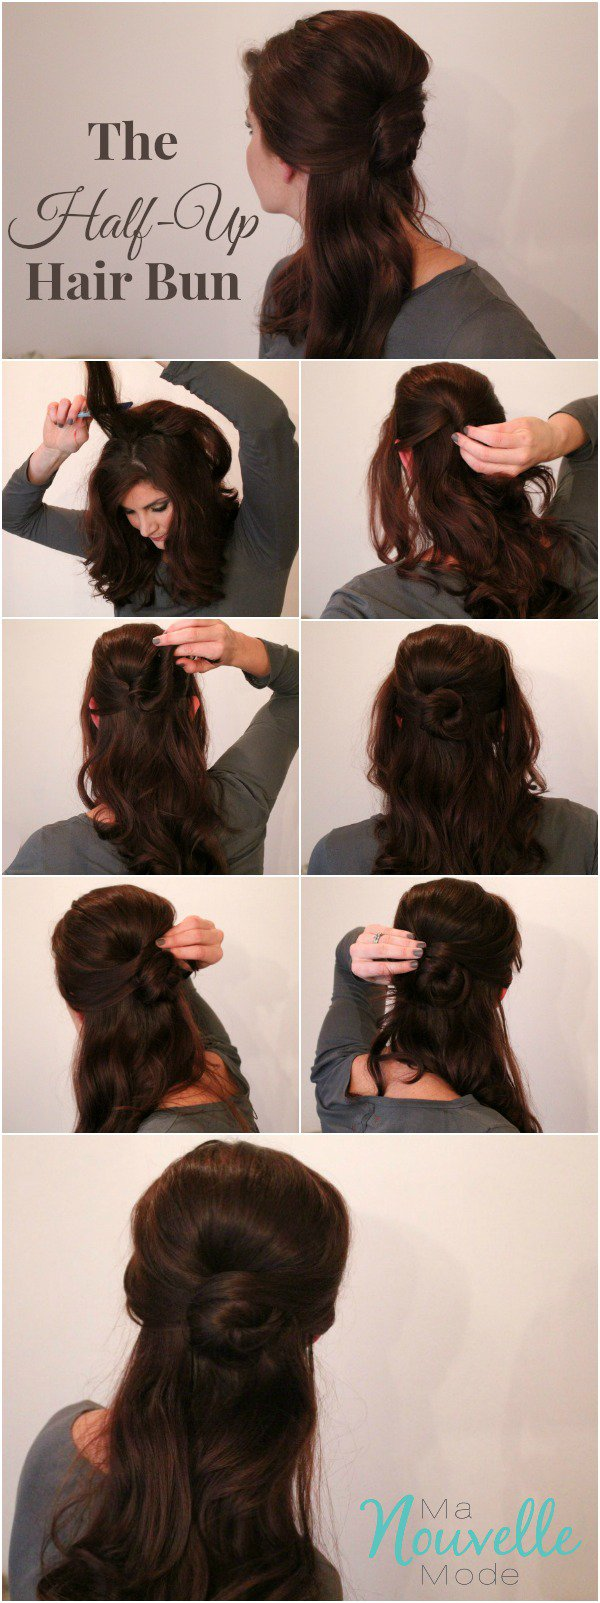 Half-Up-hair-bun